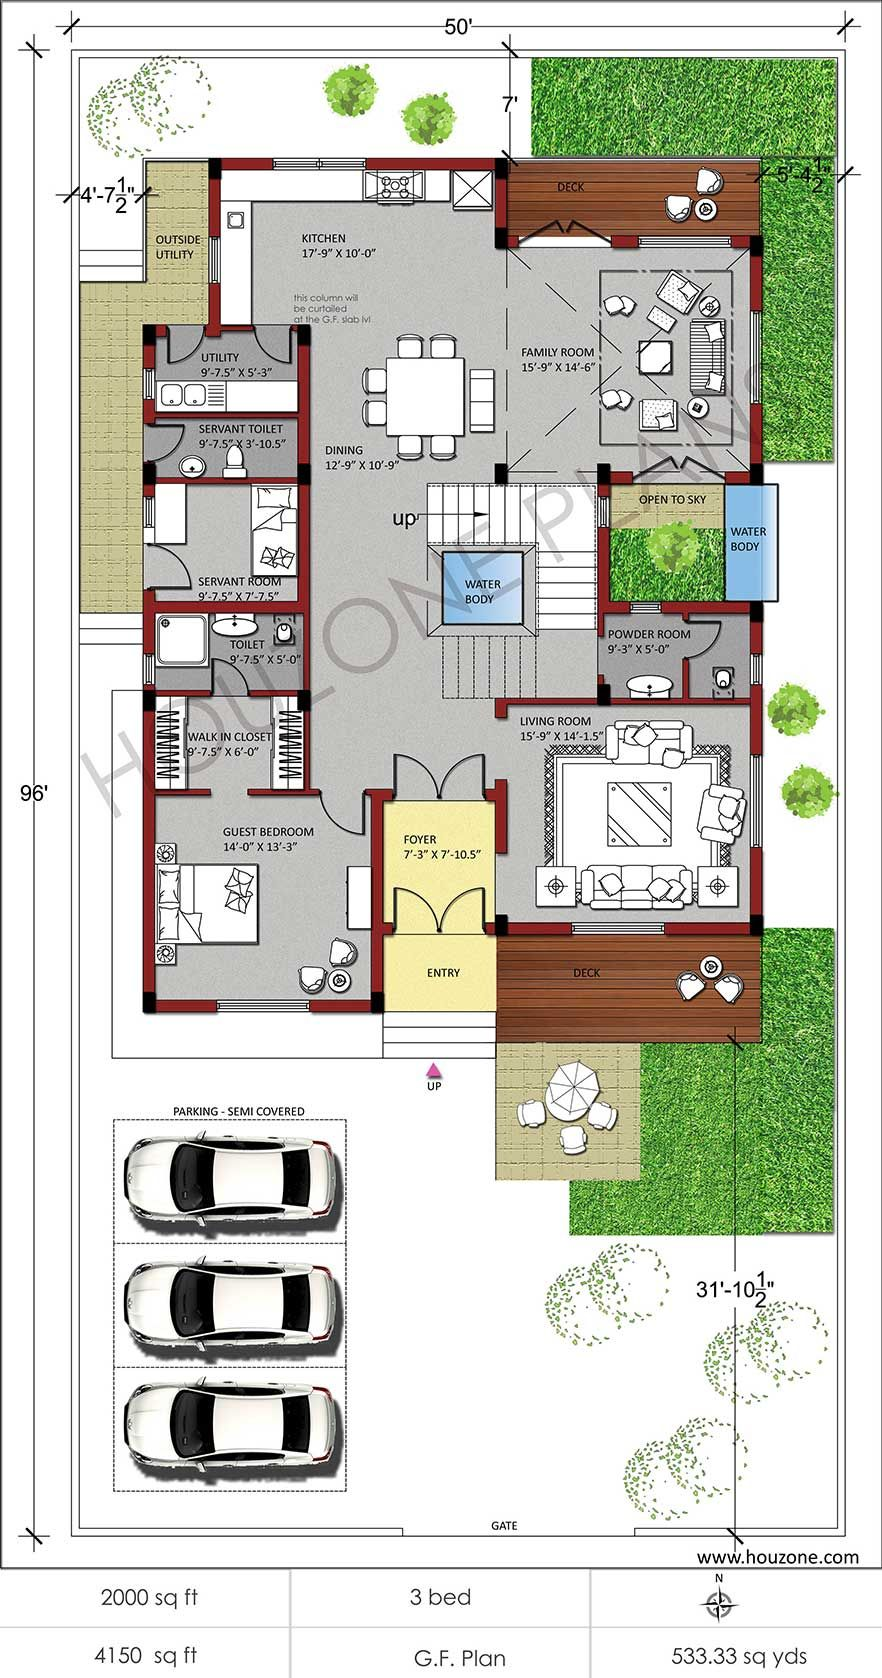 39 Ideal Luxury Bedroom Plan Beautiful House Plans Duplex House Plans Vastu House